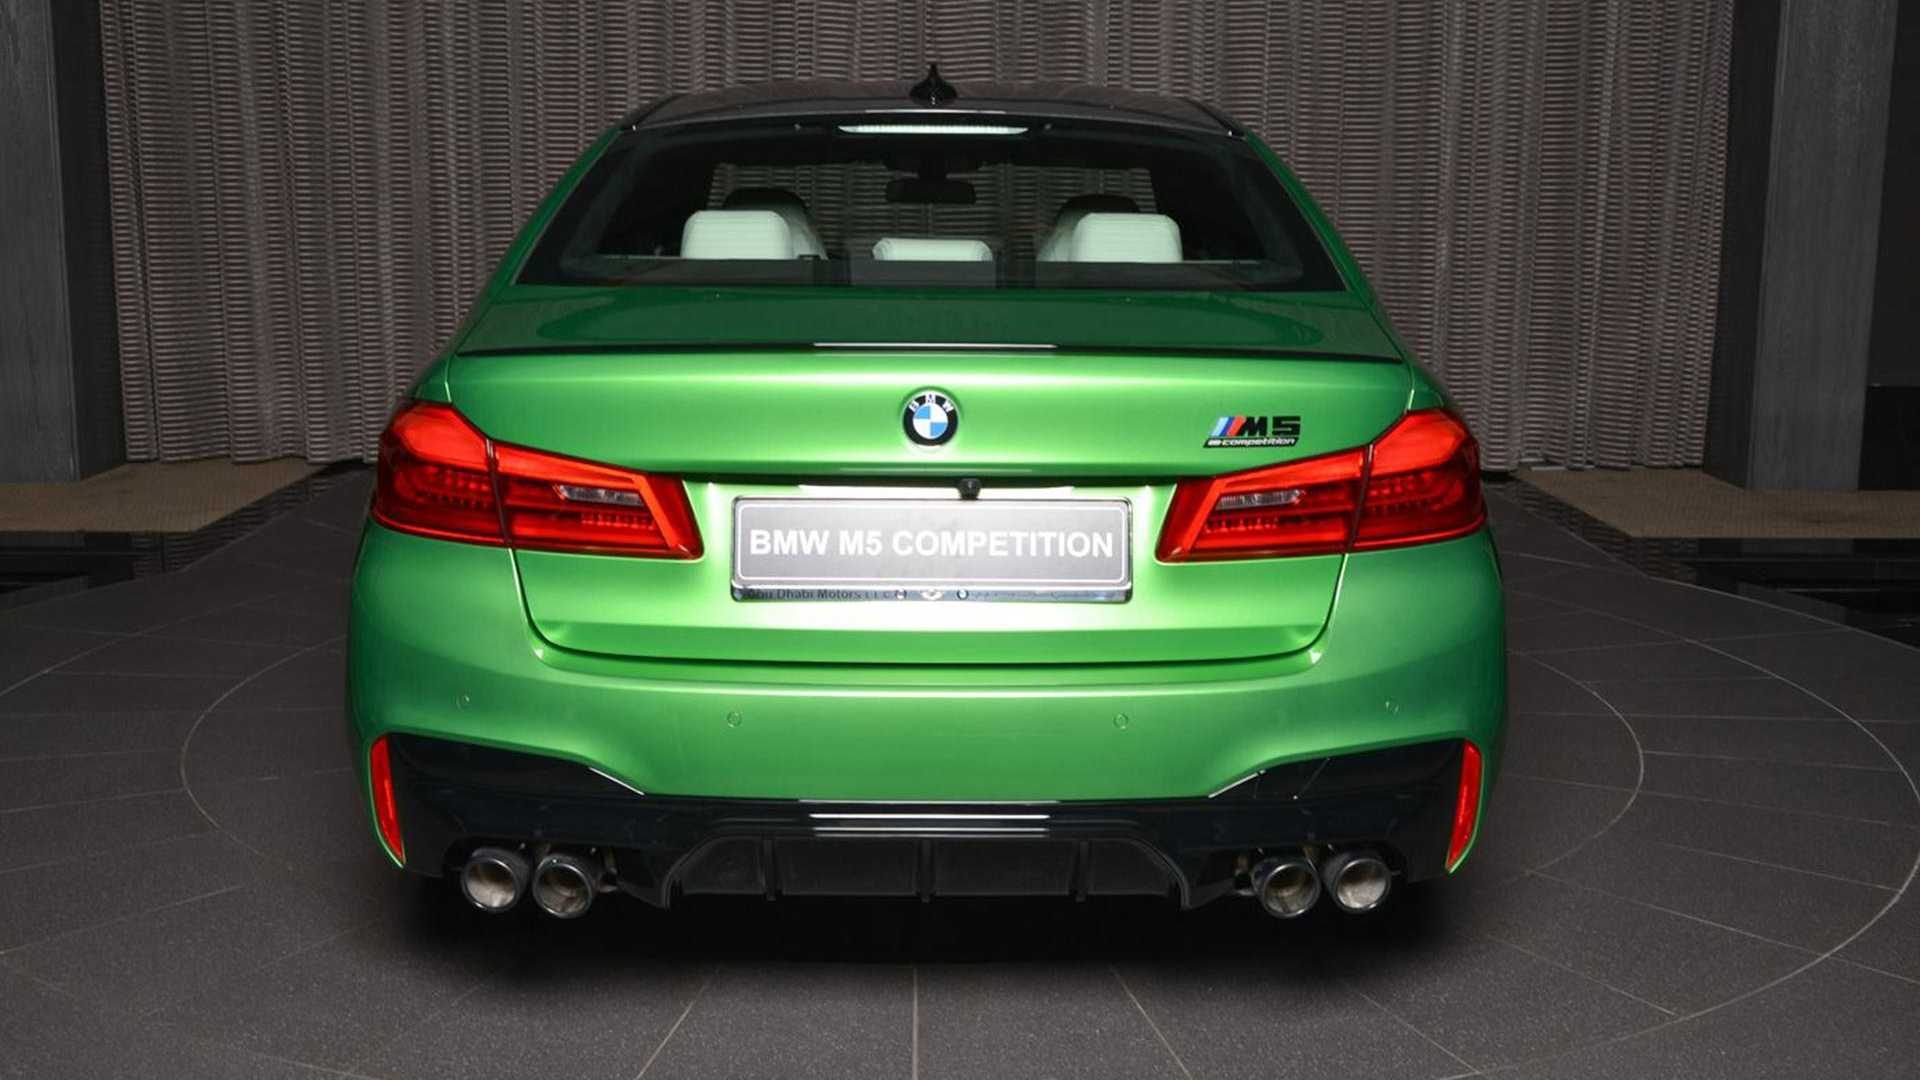 BMW M5 Competition Rally Green